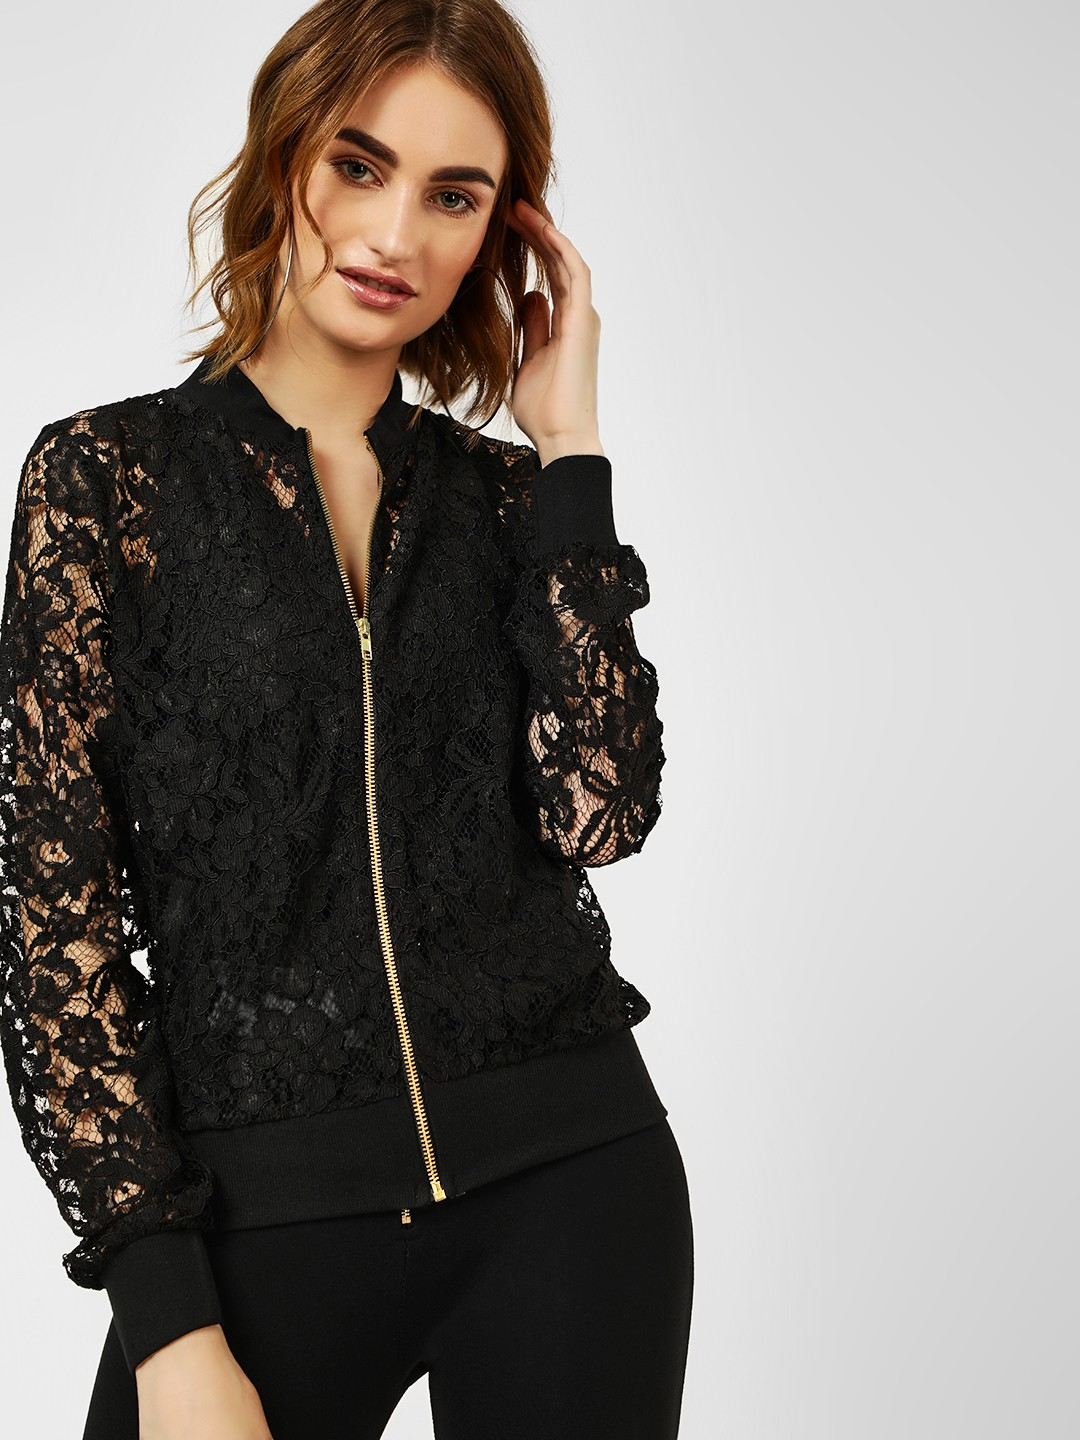 All Good Things Black Lace Insert Bomber Jacket 1